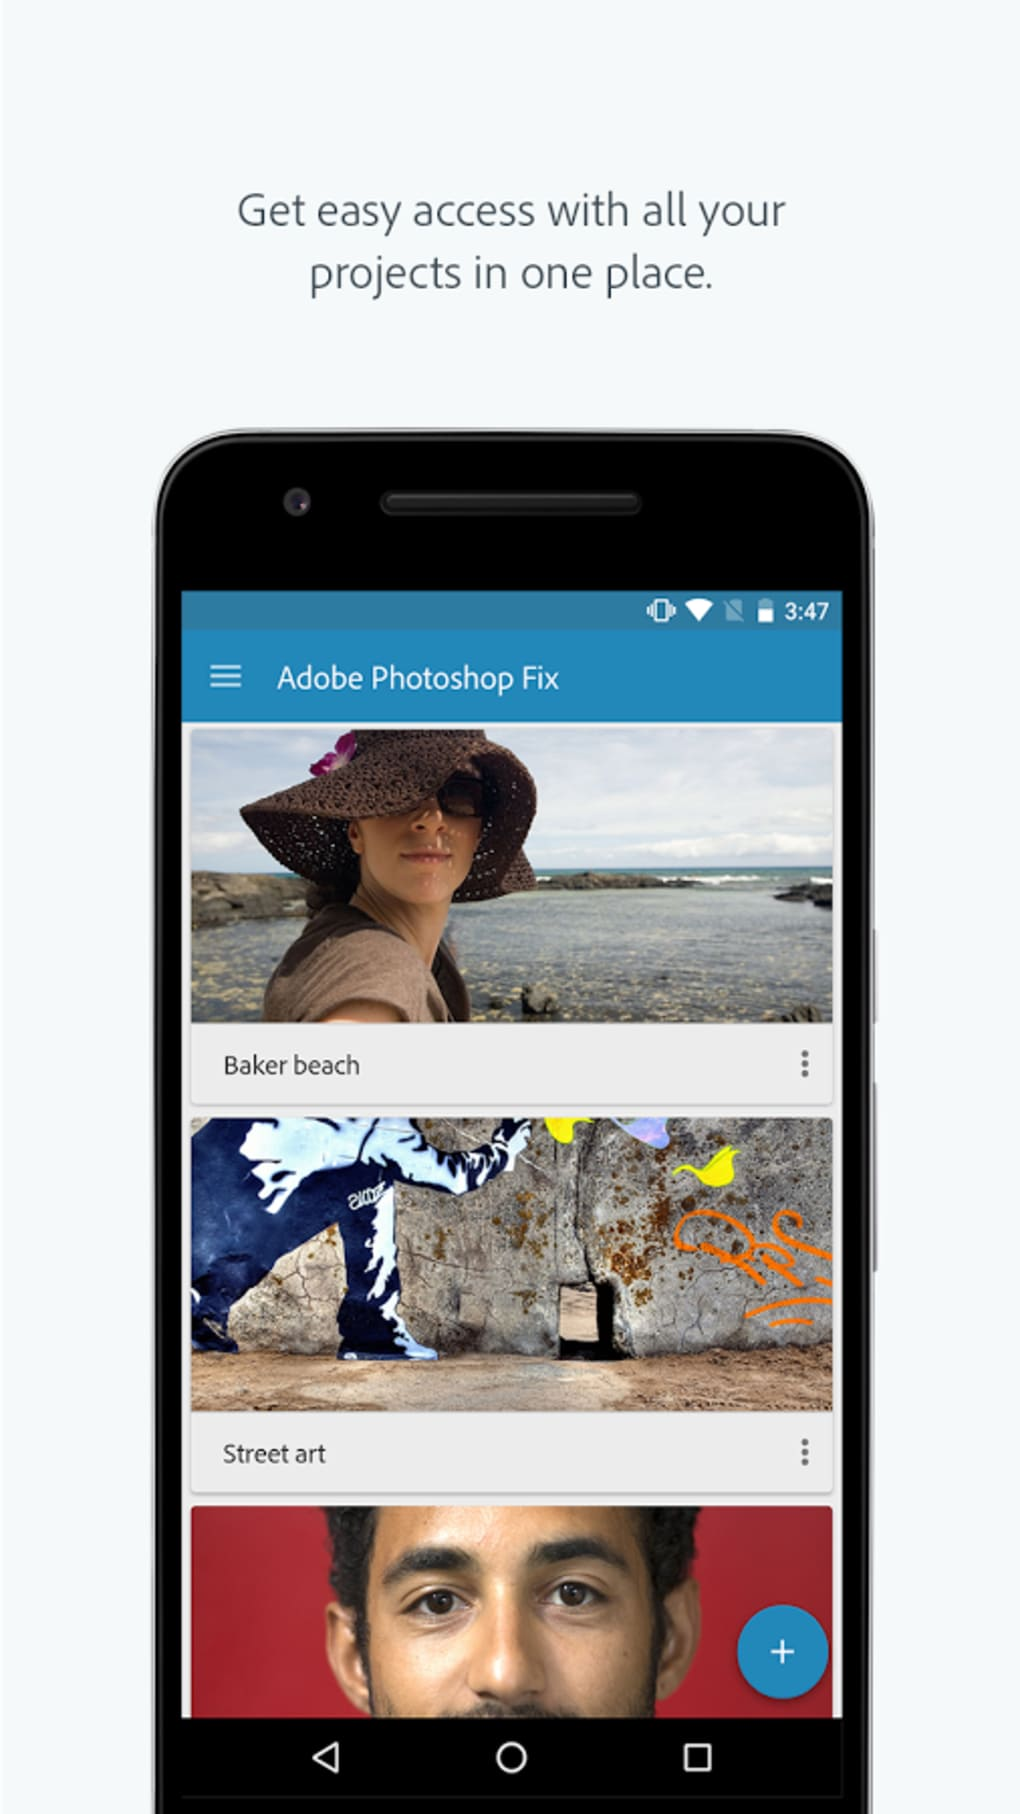 Adobe Photoshop Fix for Android - Download